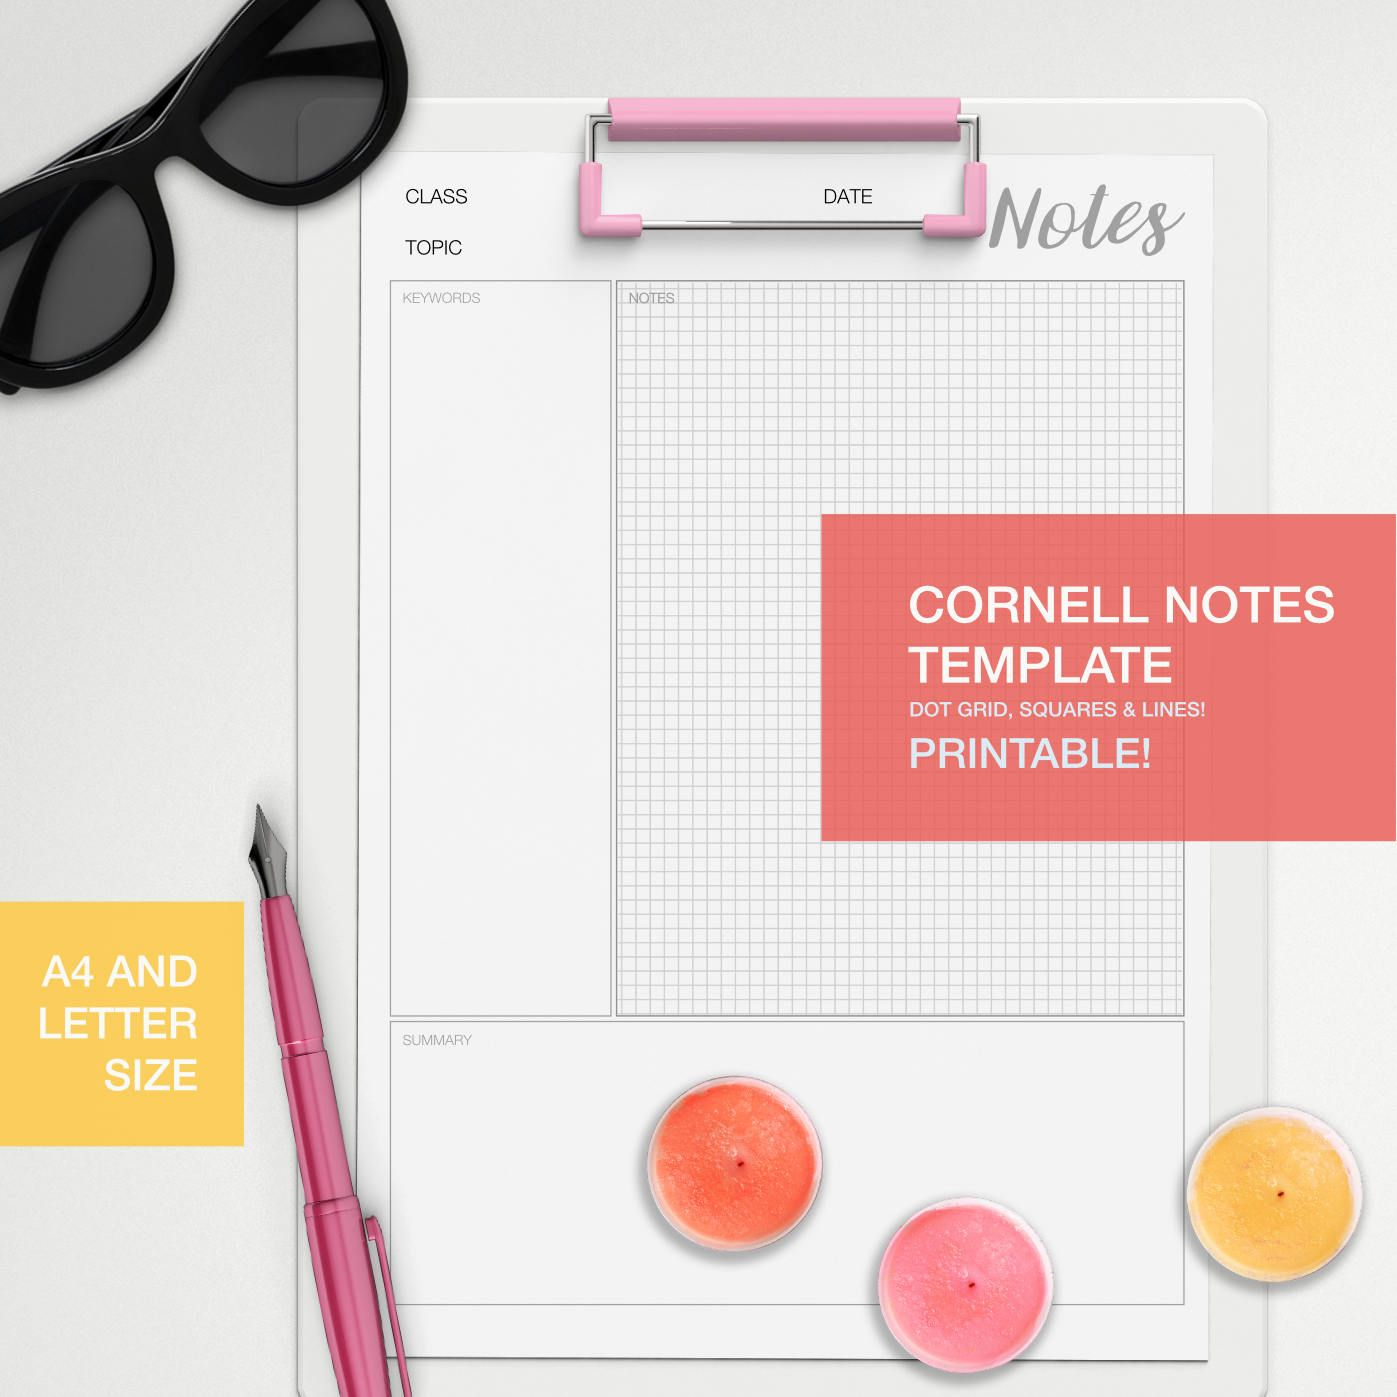 Printable Cornell Notes Template For Your Studying And NoteTaking